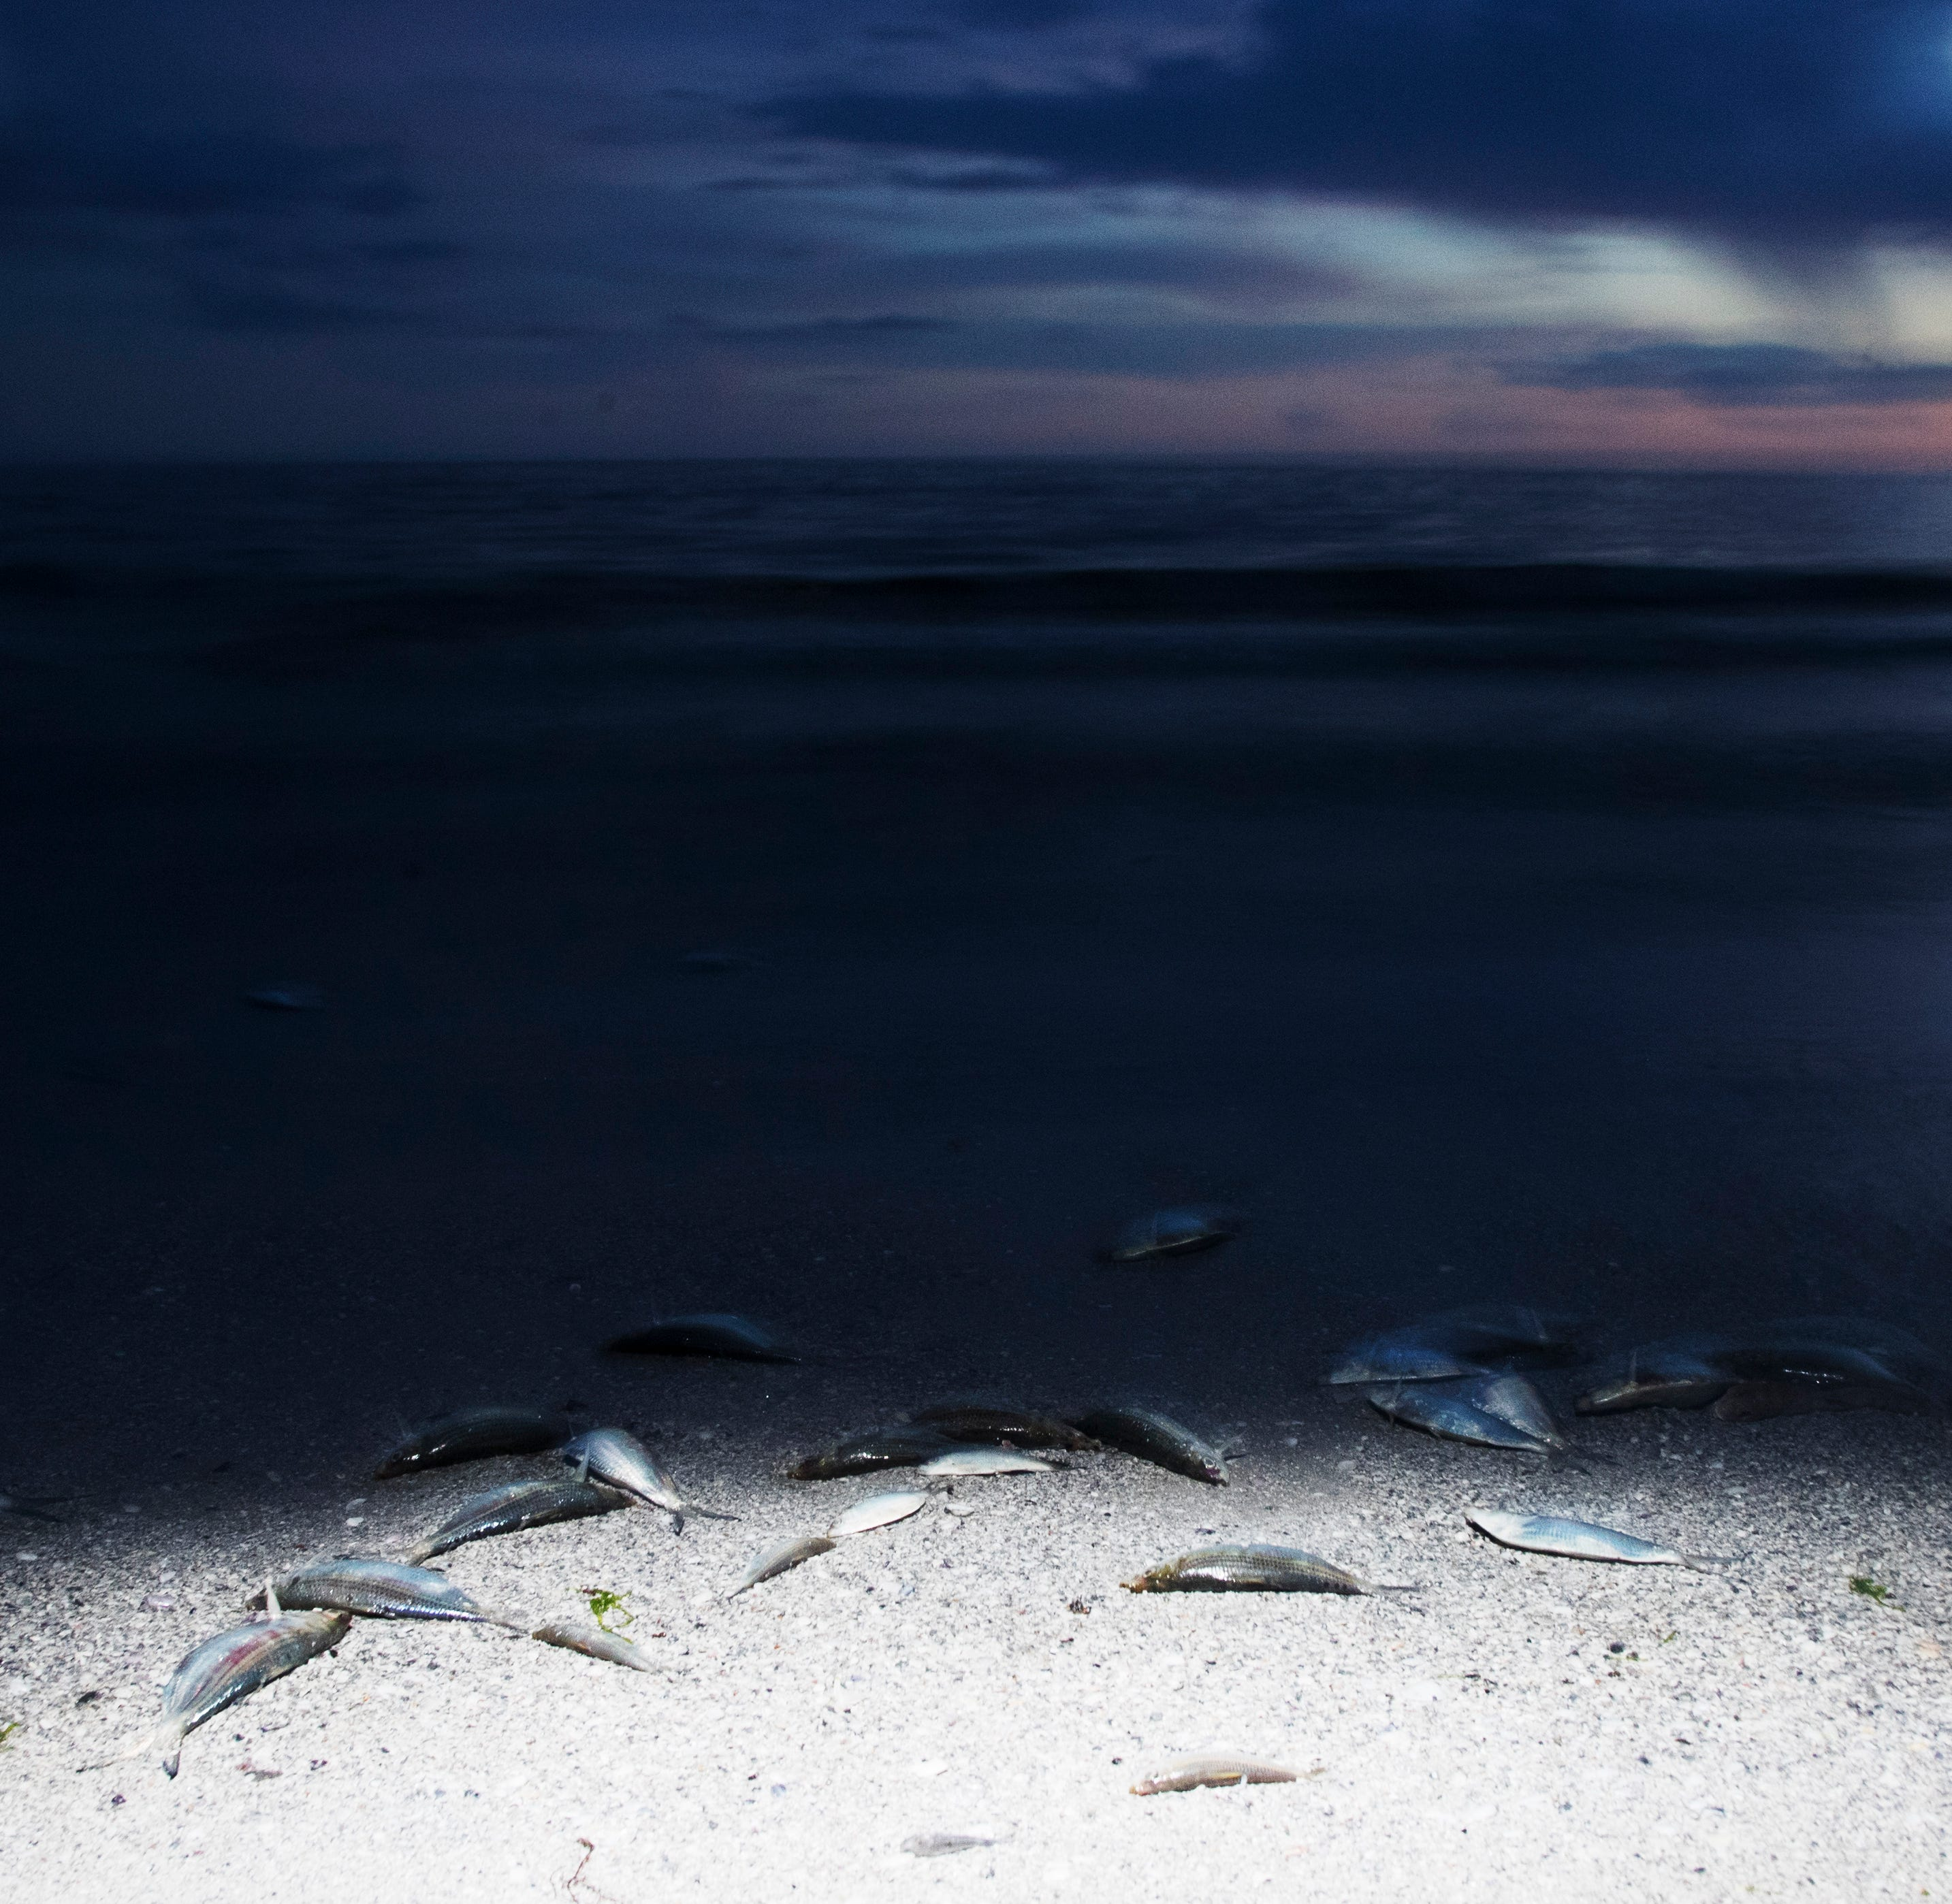 Florida algae crisis: Is red tide getting better? Not so much